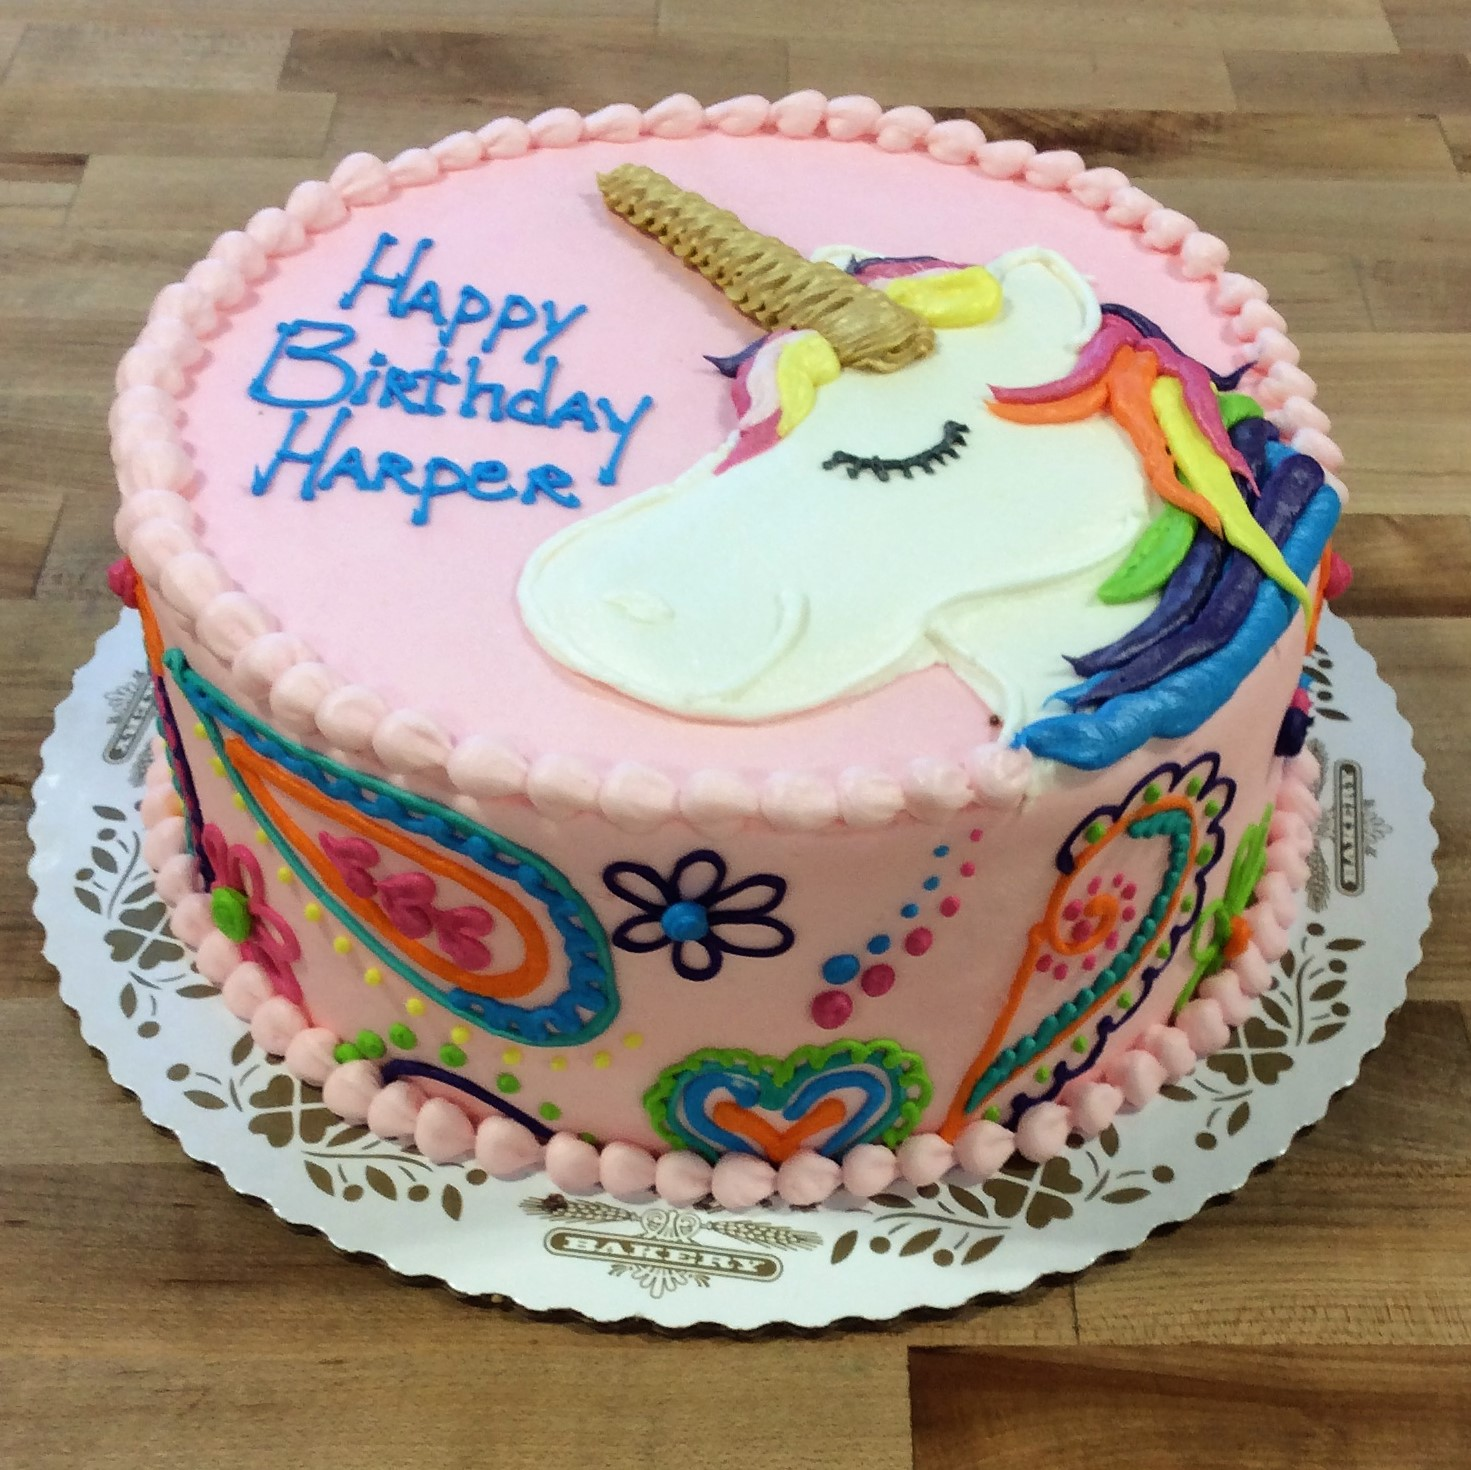 Pink Cake with Unicorn and Paisley Decorations